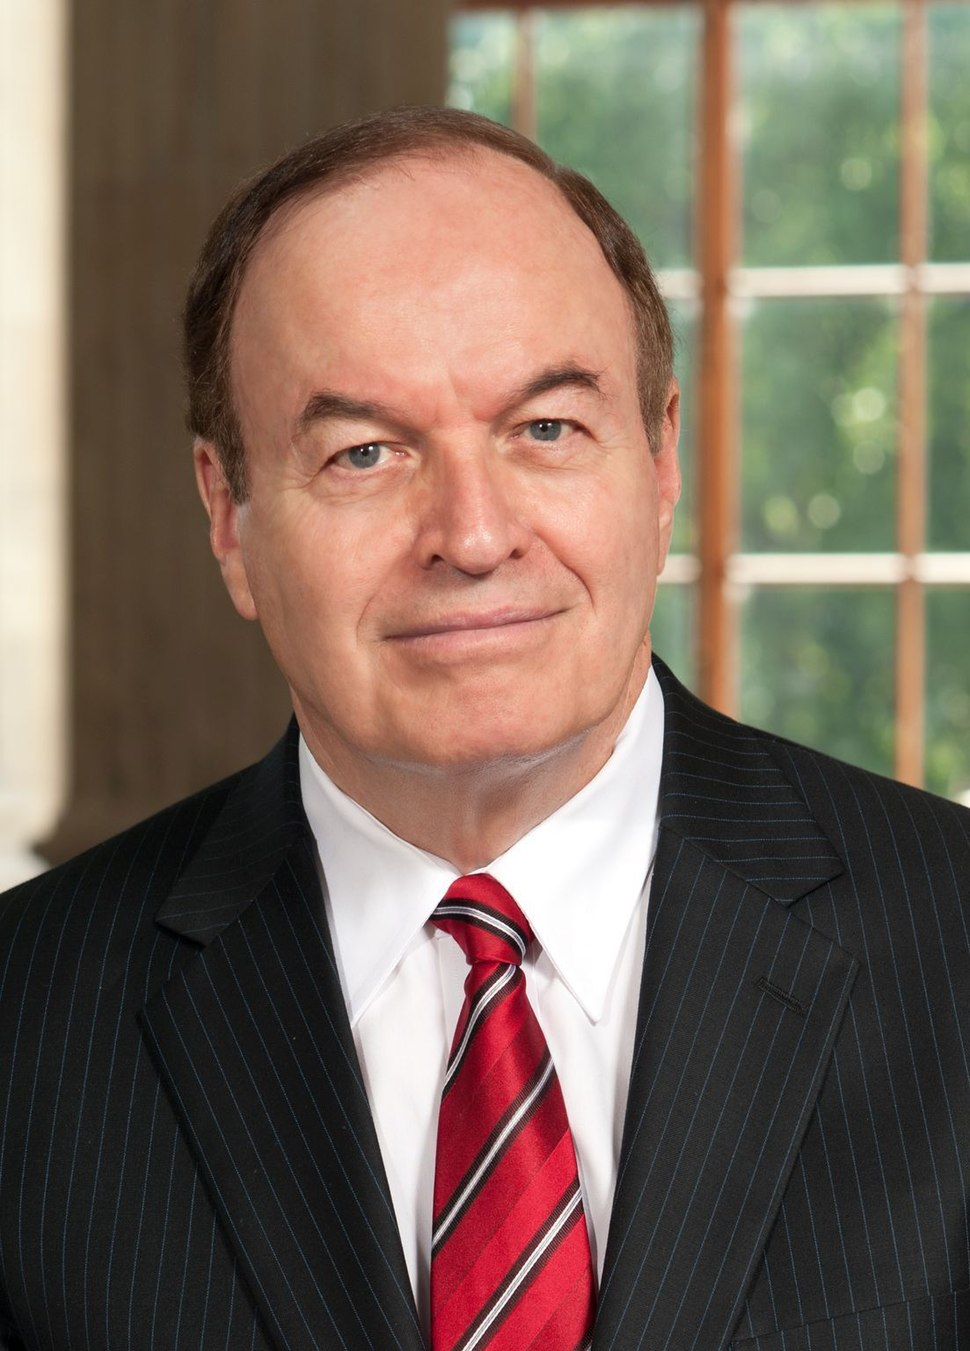 Richard Shelby, official portrait, 112th Congress (cropped)